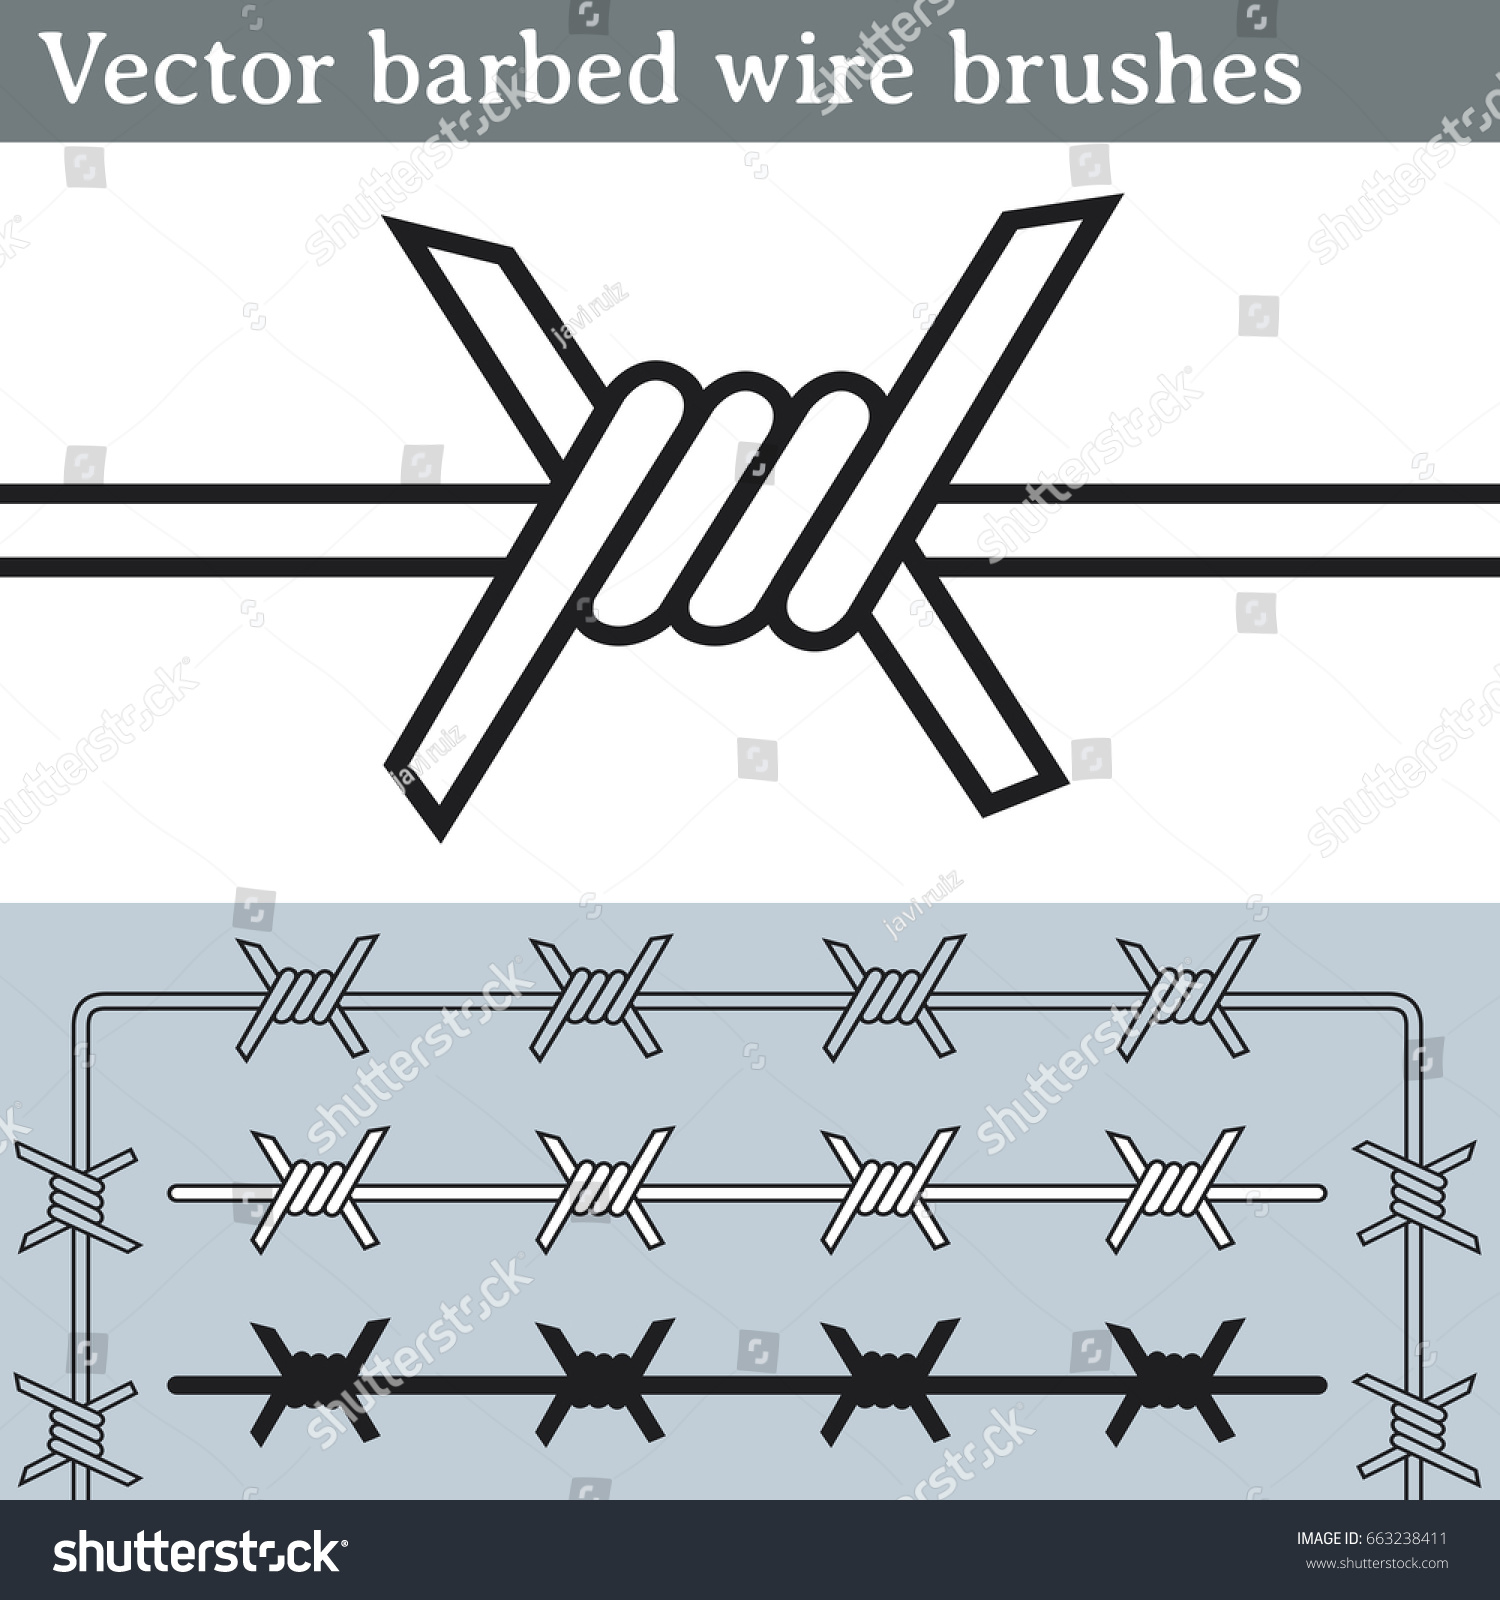 Barbed wire vector brush - Vector Barbed Wire Brushes Brushes For Illustrator To Draw Barbed Wire Three Different Versions